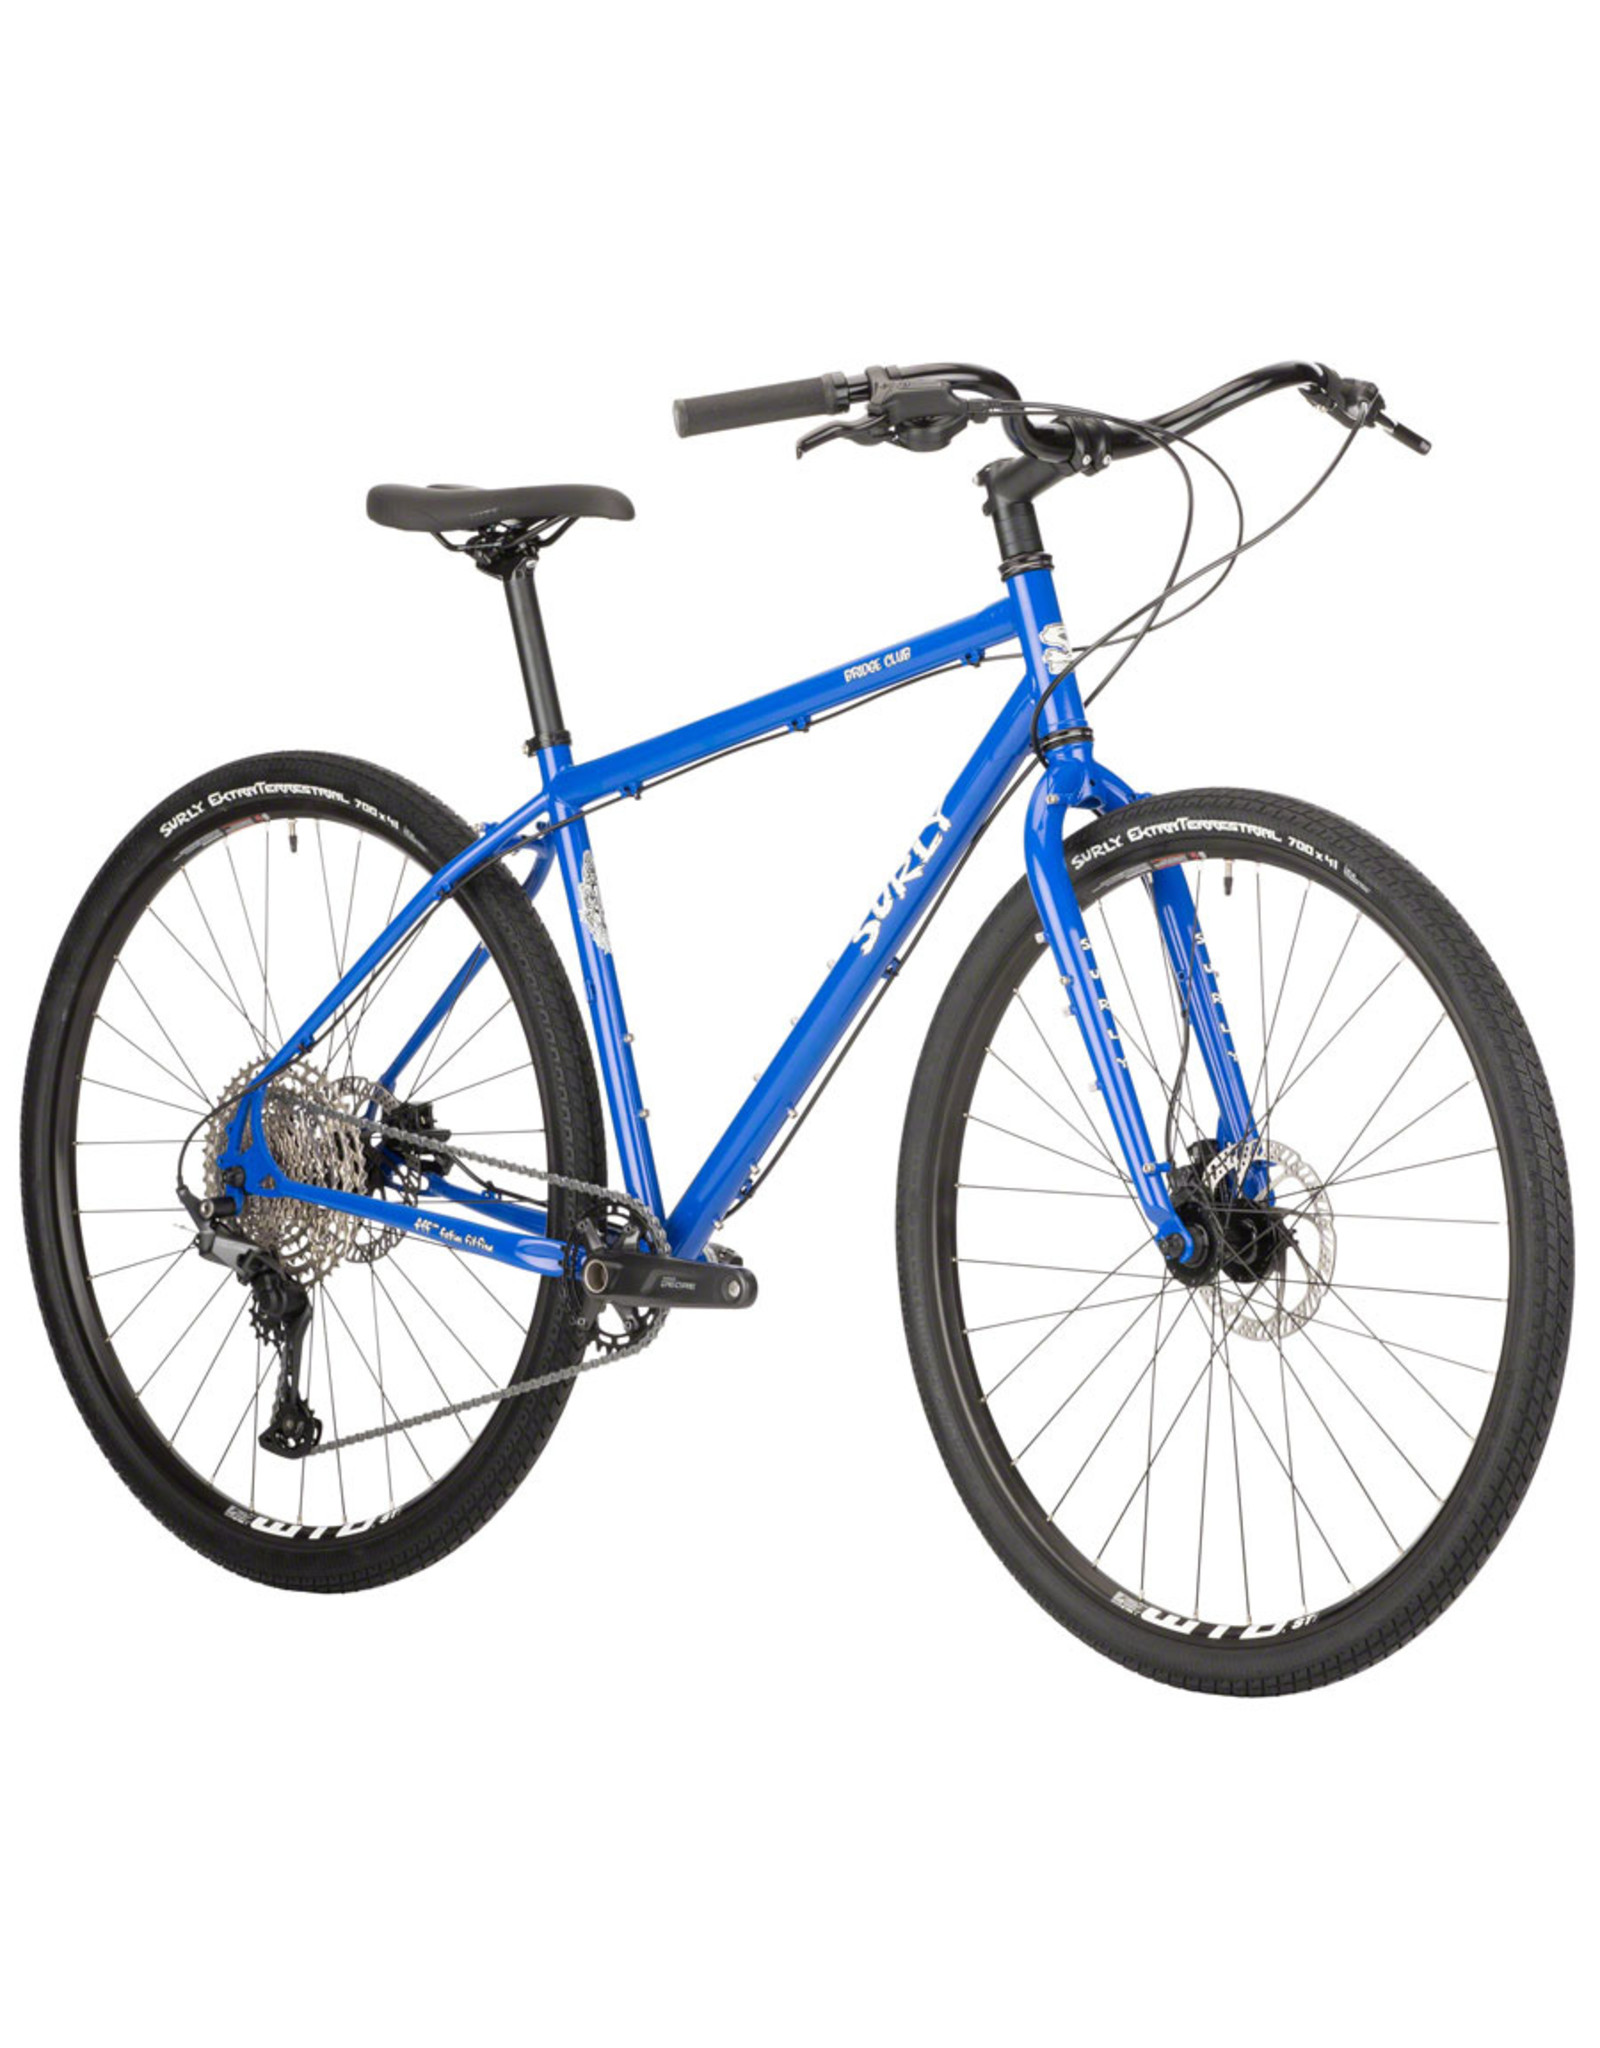 Surly Surly Bridge Club 700c Bike - Steel